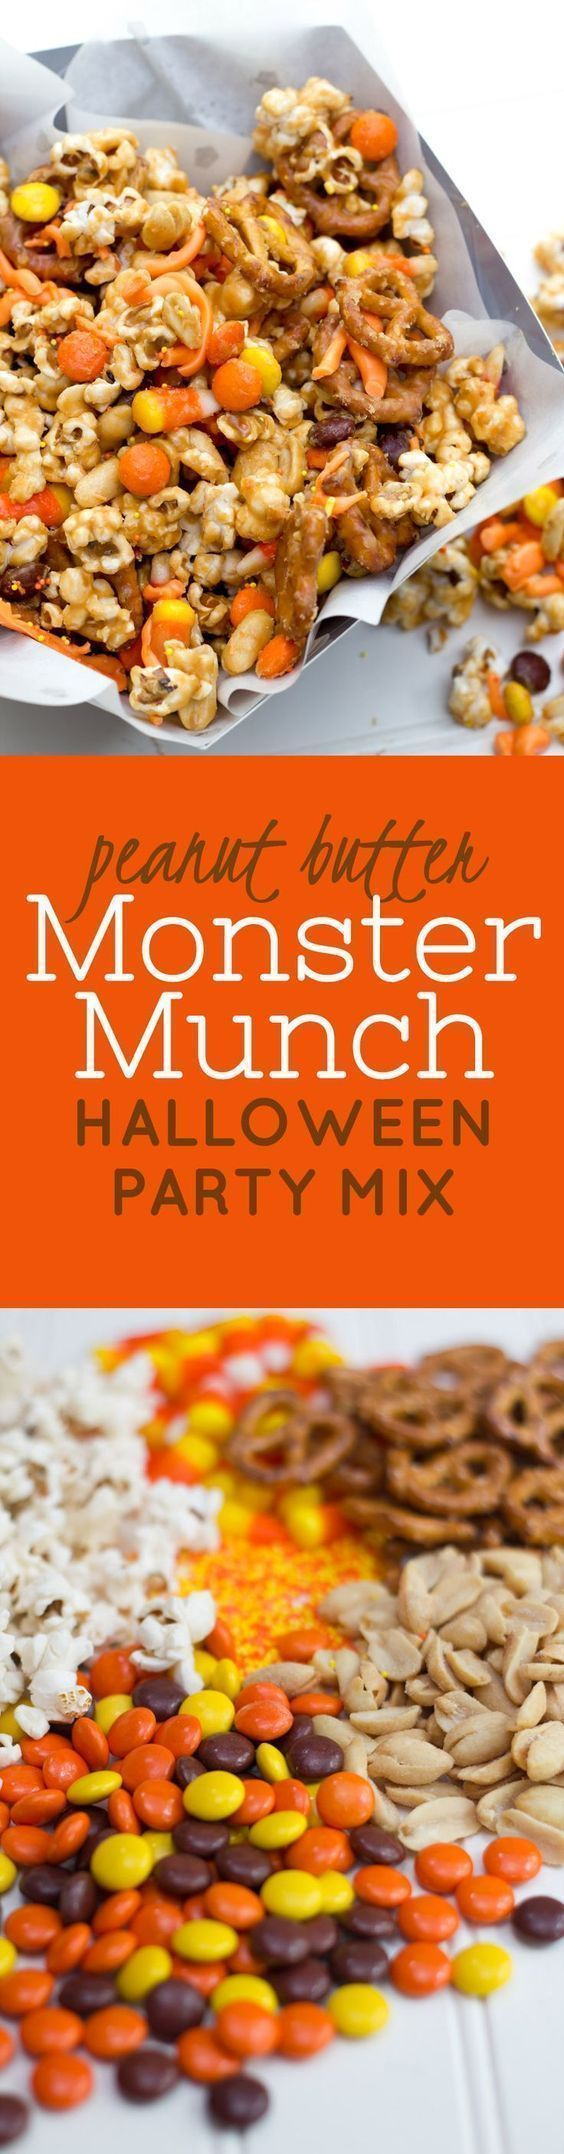 Peanut Butter Monster Munch Halloween Party Mix | Recipe ...